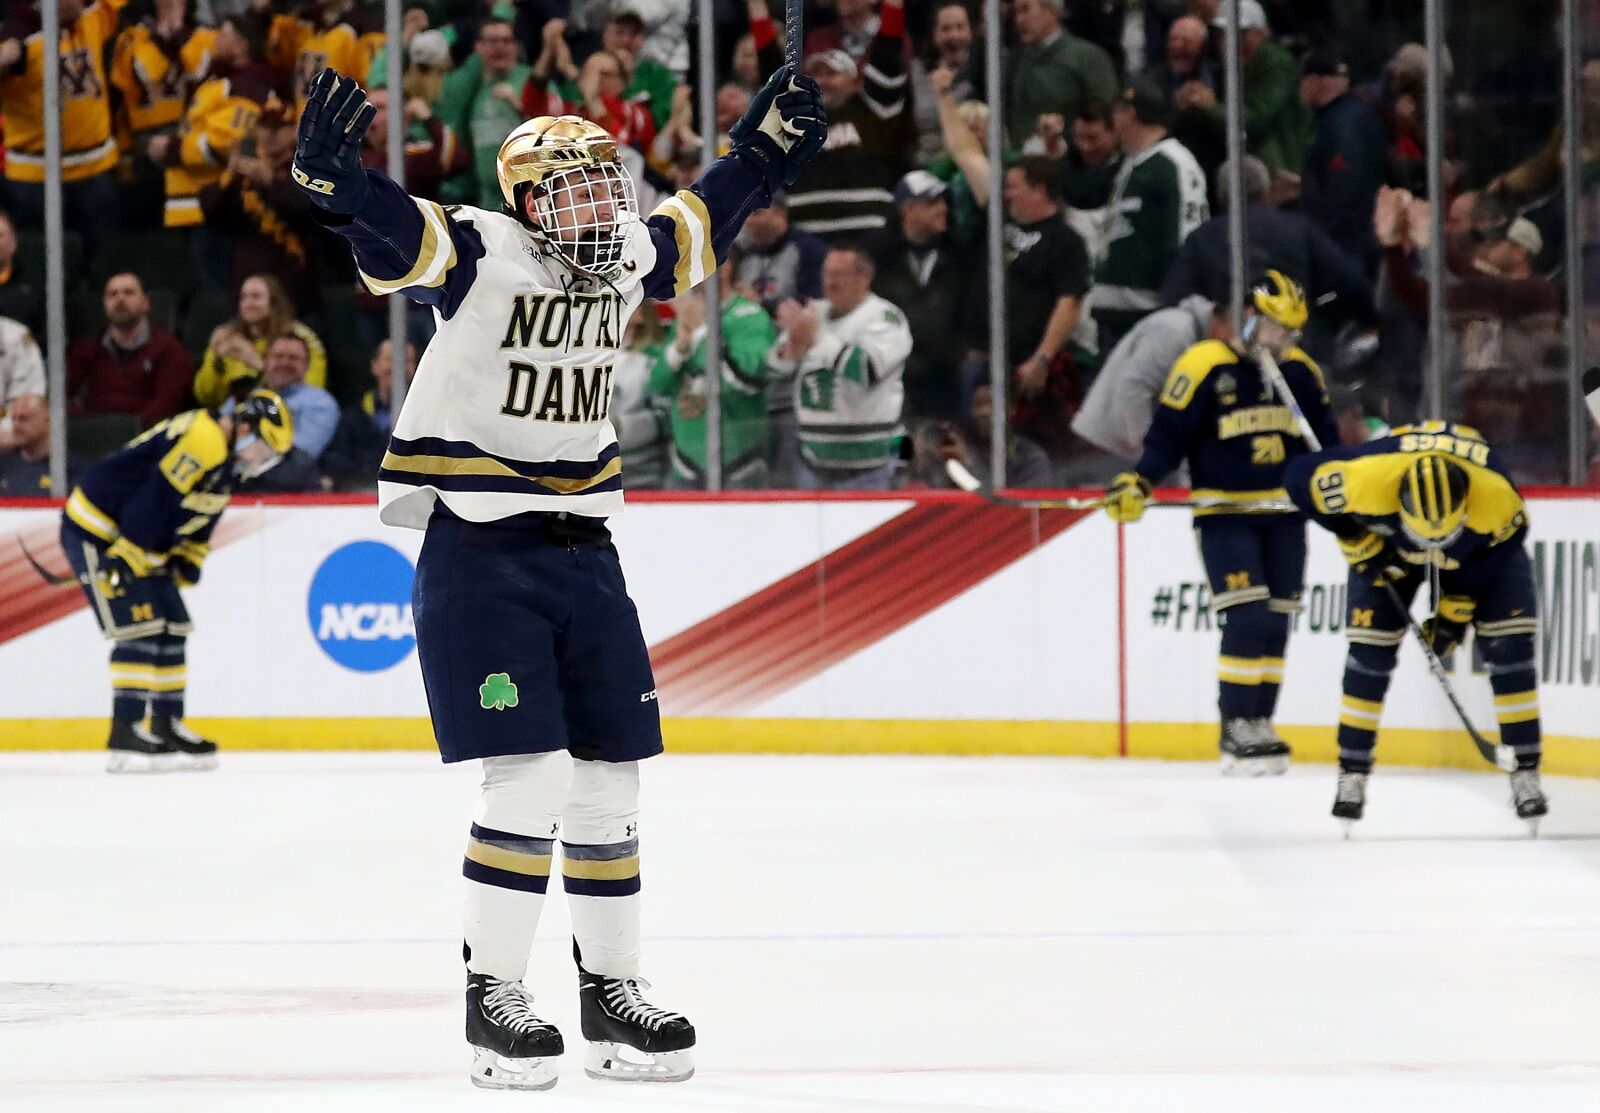 Notre Dame Hockey: Irish Take on Penn State in Big Ten Championship